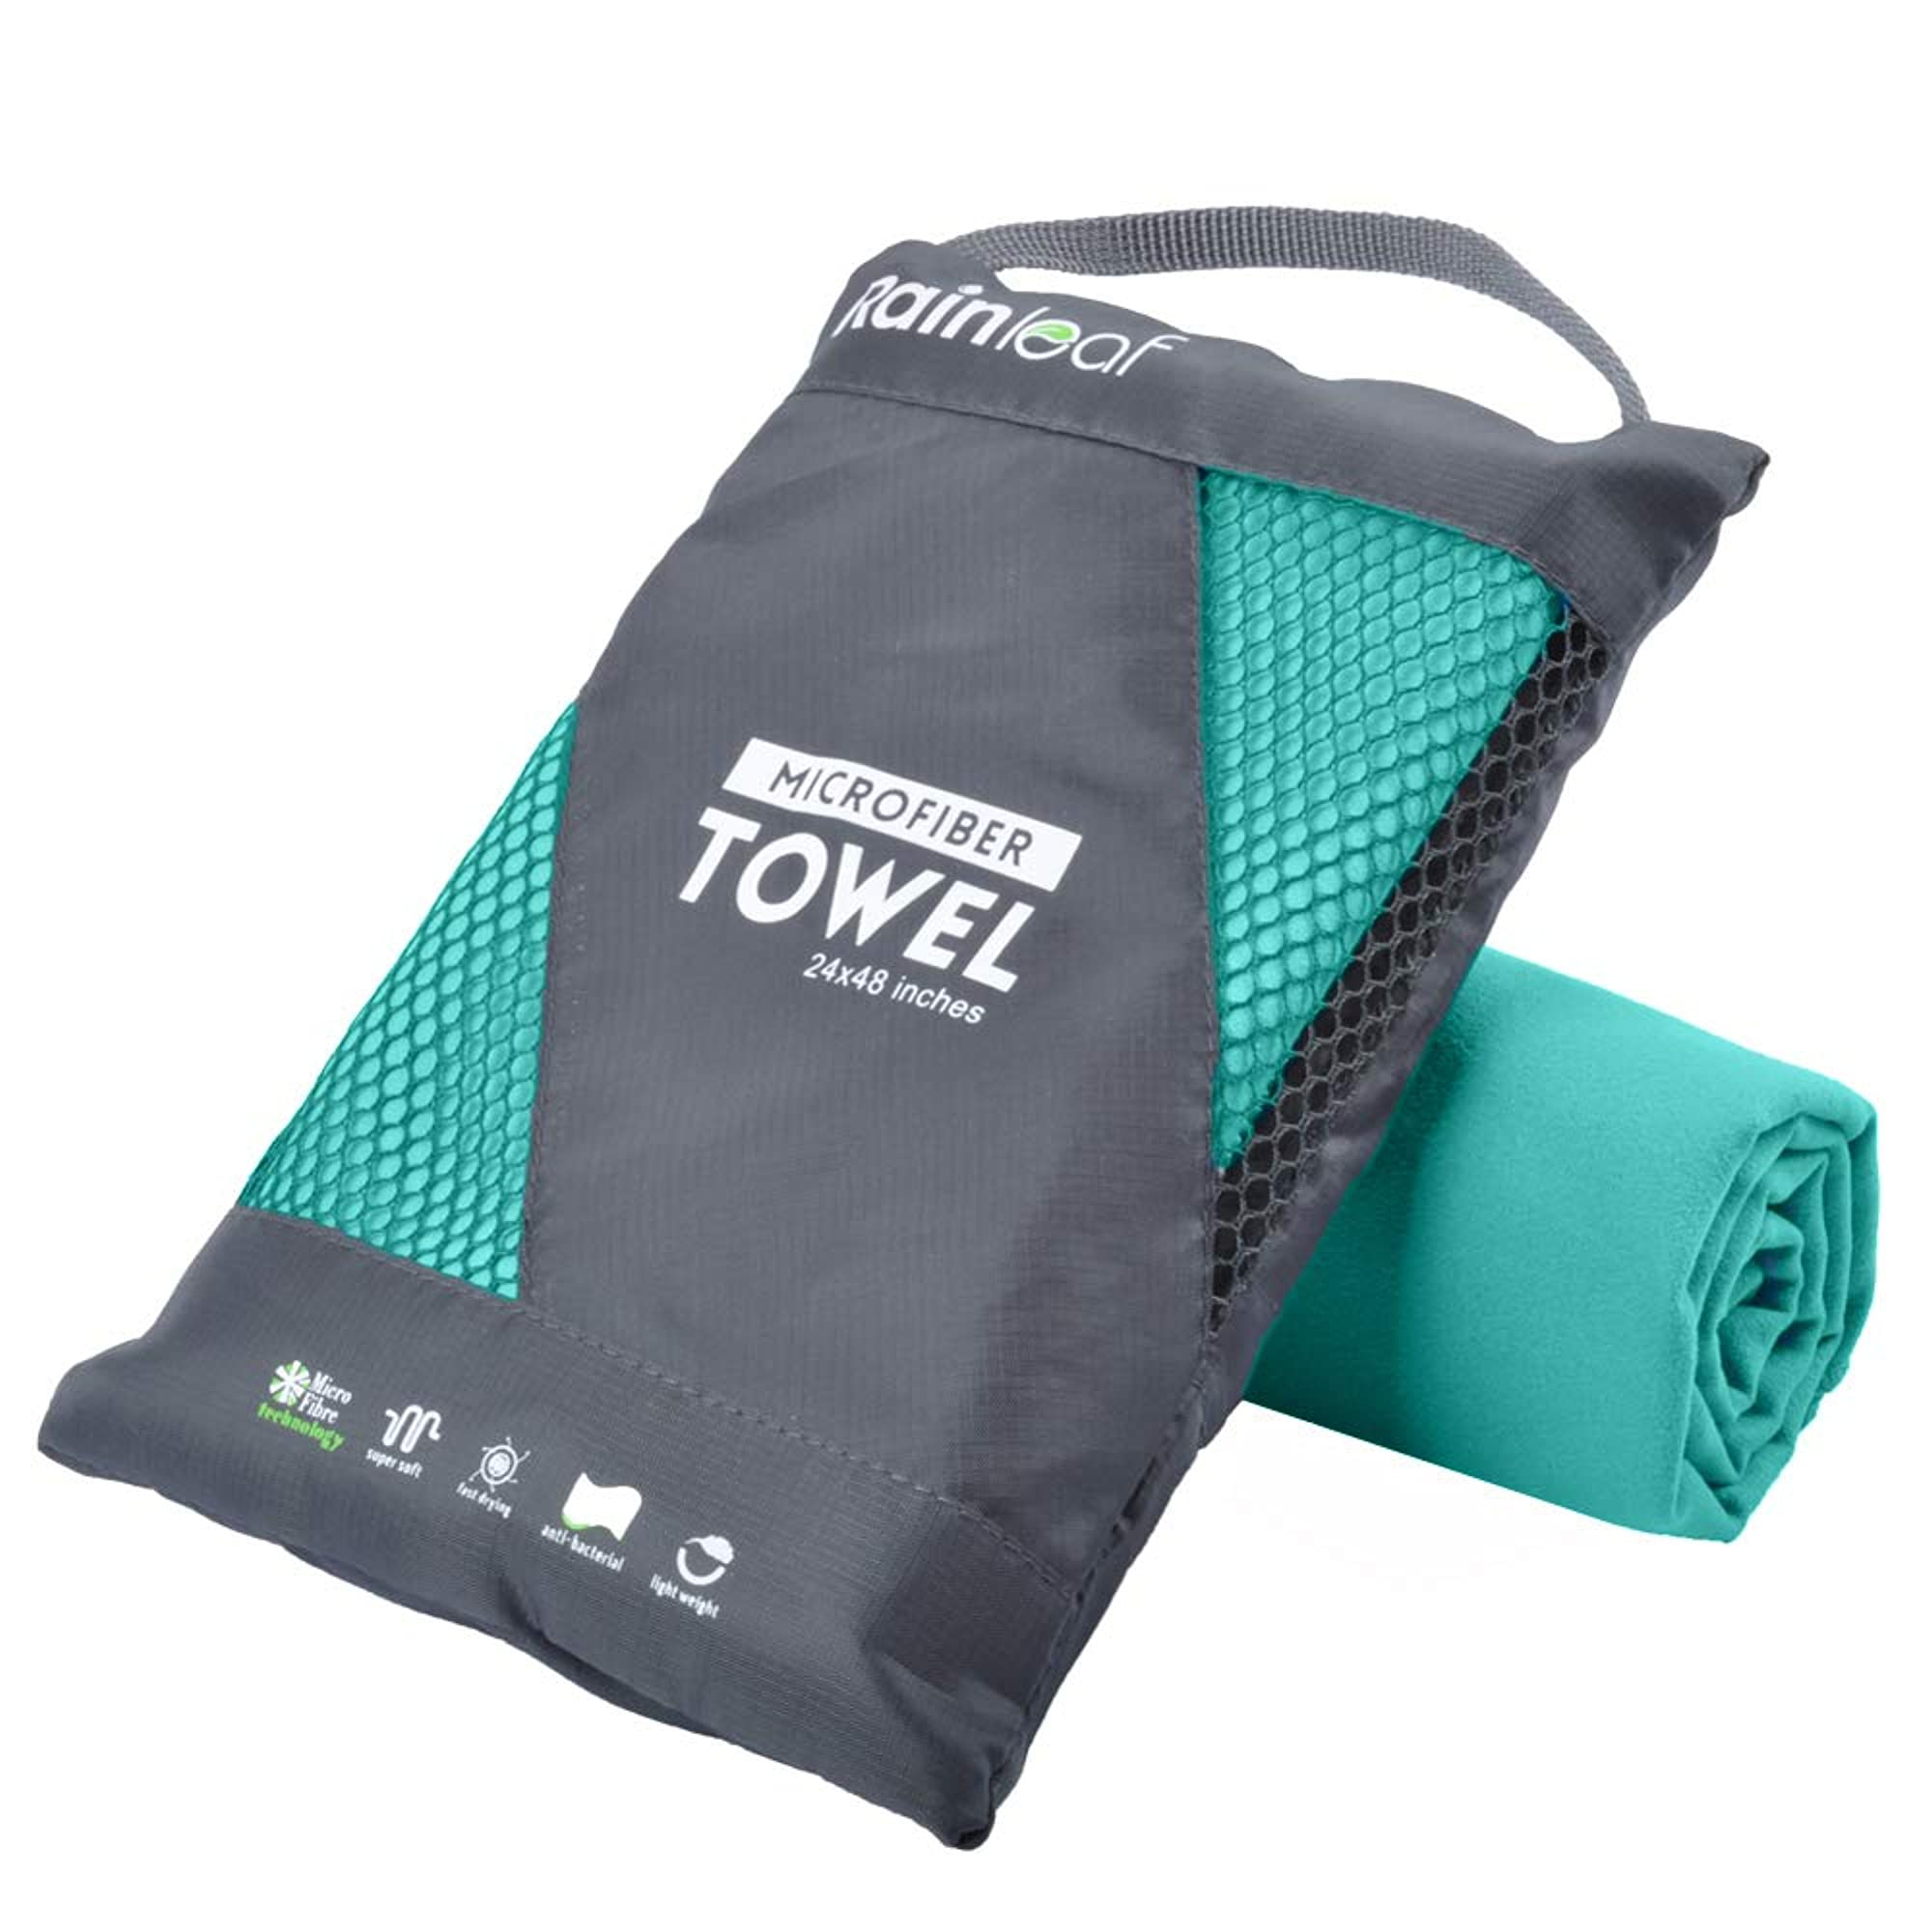 Fast Drying, Super Absorbent, Ultra Compact Microfiber Towel